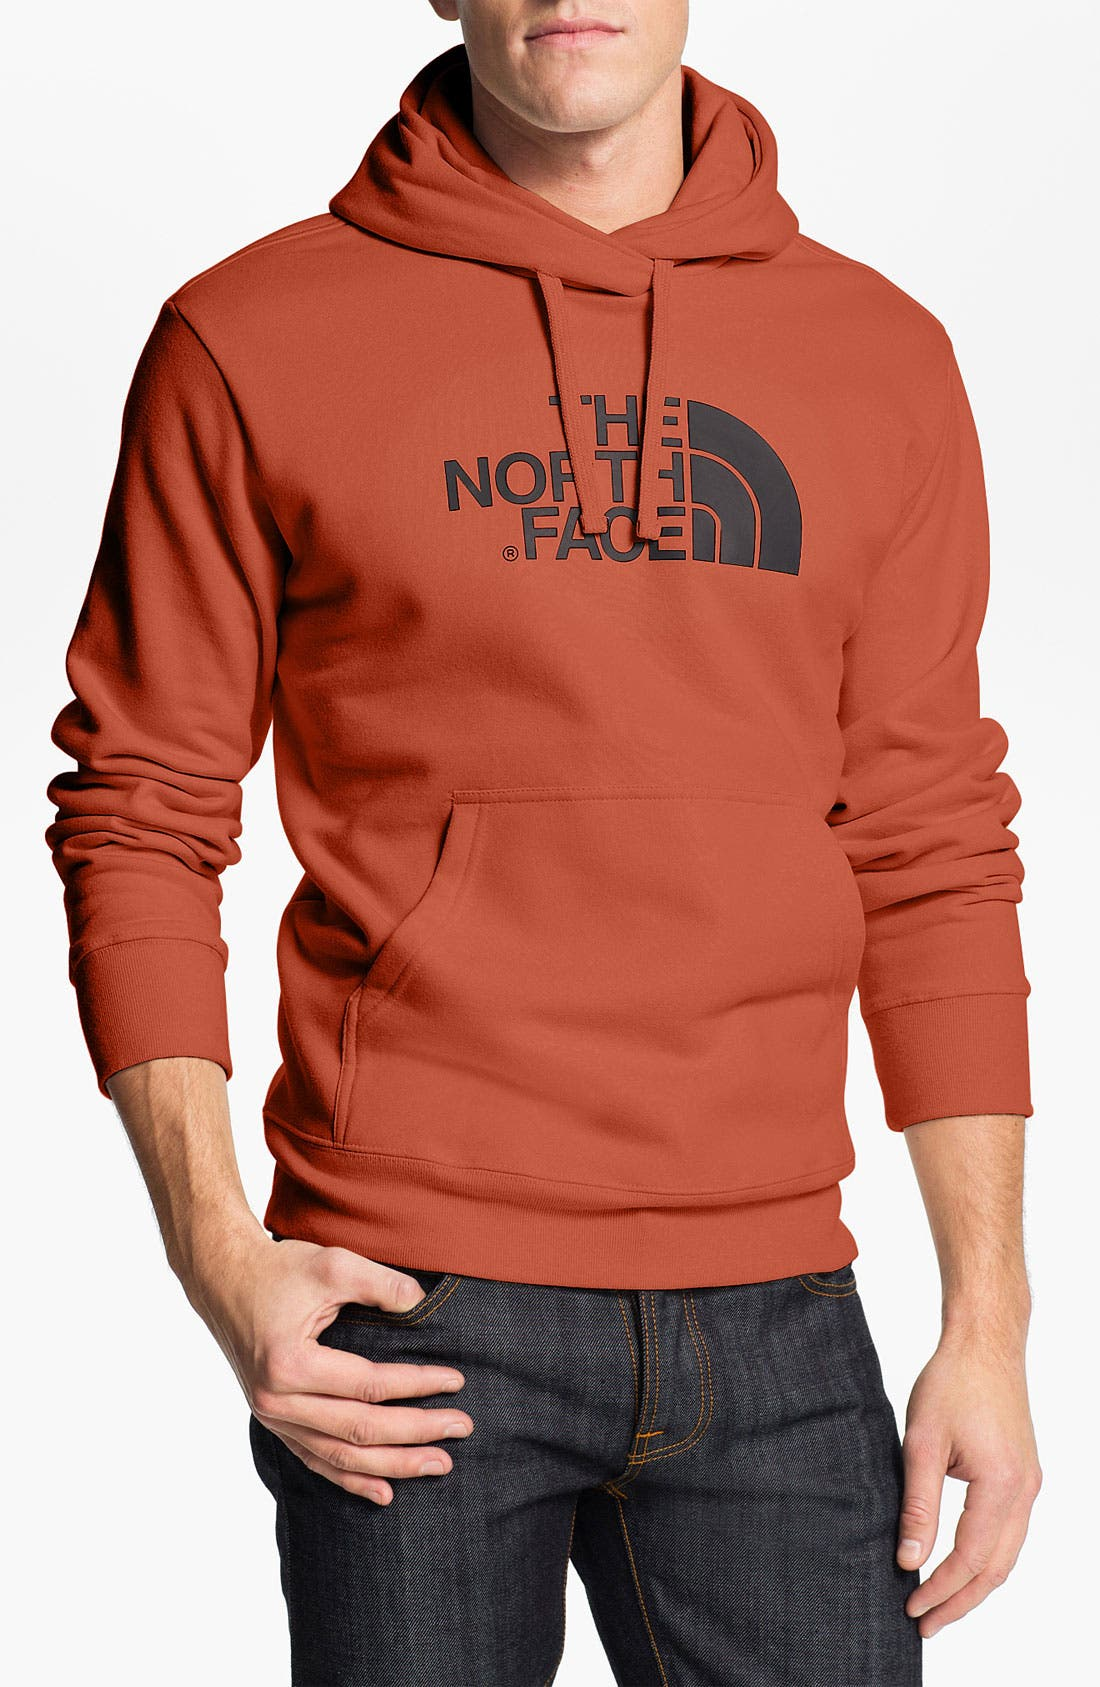 Alternate Image 1 Selected - The North Face 'Half Dome' Hoodie (Big & Tall)